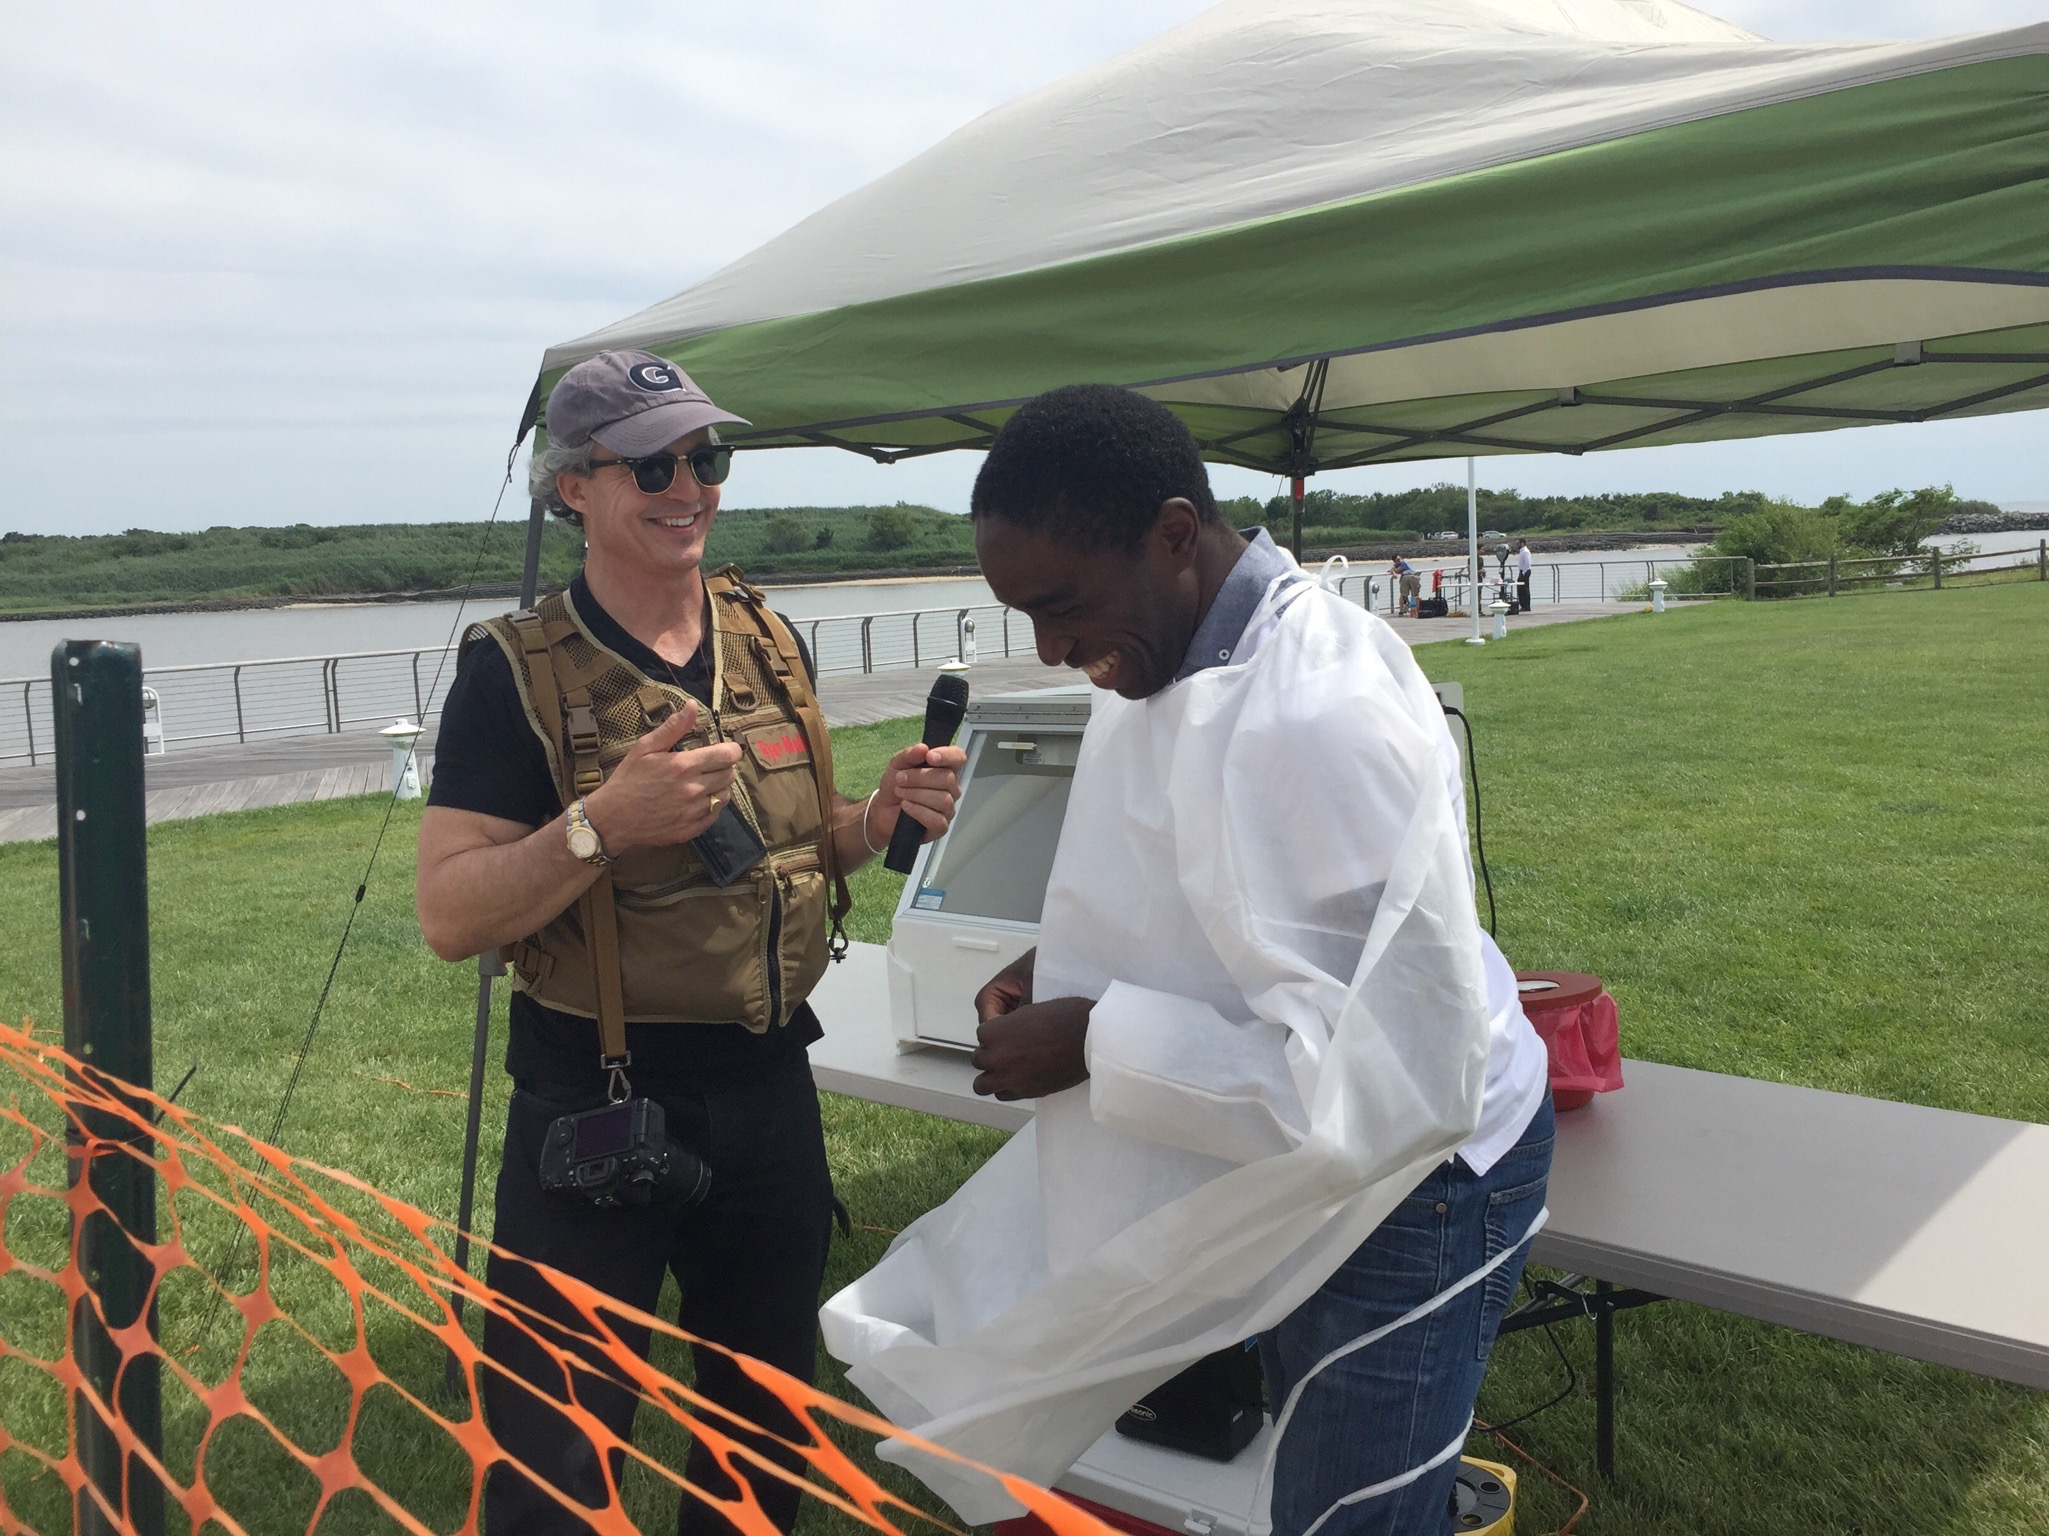 Dr. Timothy Amukele (right), of Johns Hopkins University Hospital, and Mark A. Ryan (left), CEO of Ryan Media Lab, prepare for the autonomous Flirtey missions transporting sample human specimens from the shores of Cape May, N.J., to an ocean vessel, completing America's first ship-to-shore autonomous drone delivery.